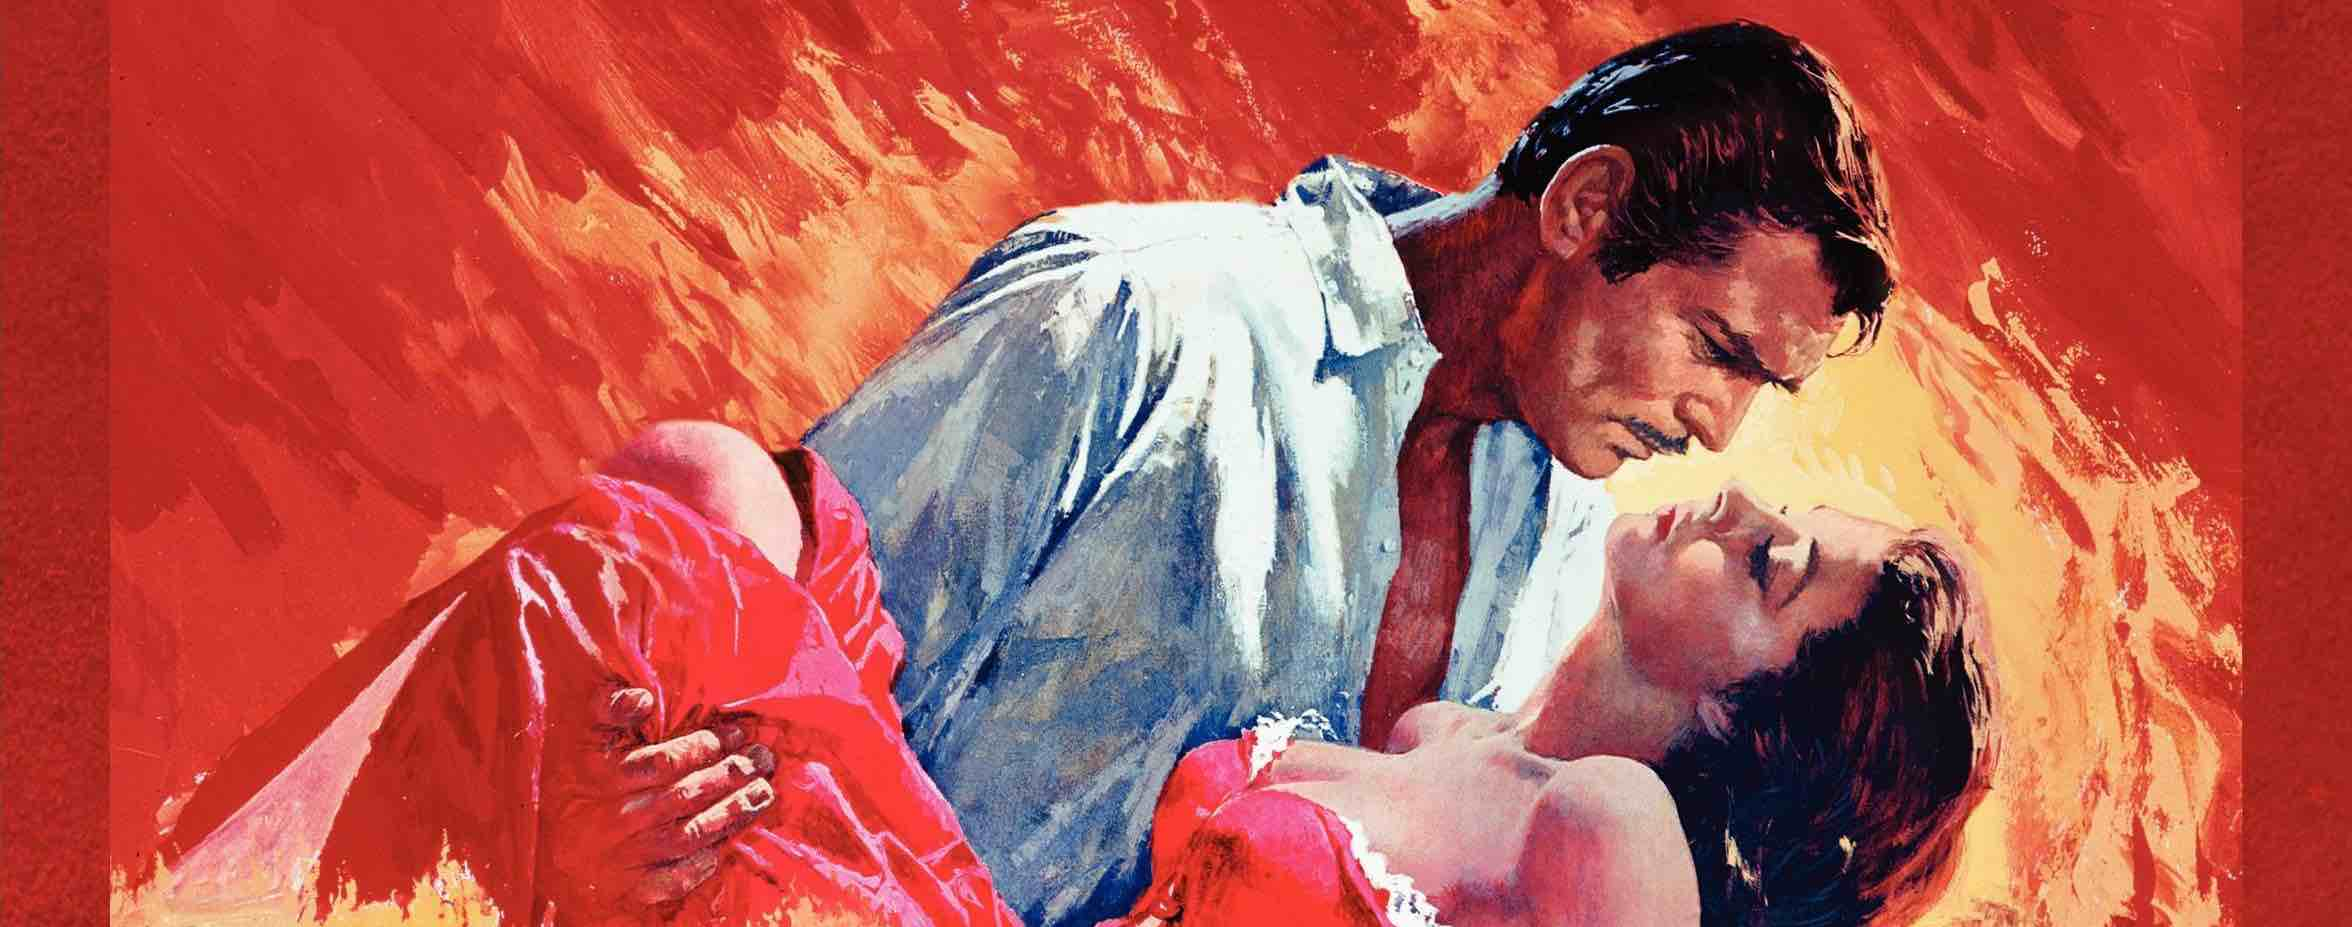 image from Gone With the Wind – when the world is up-side-down and reactions